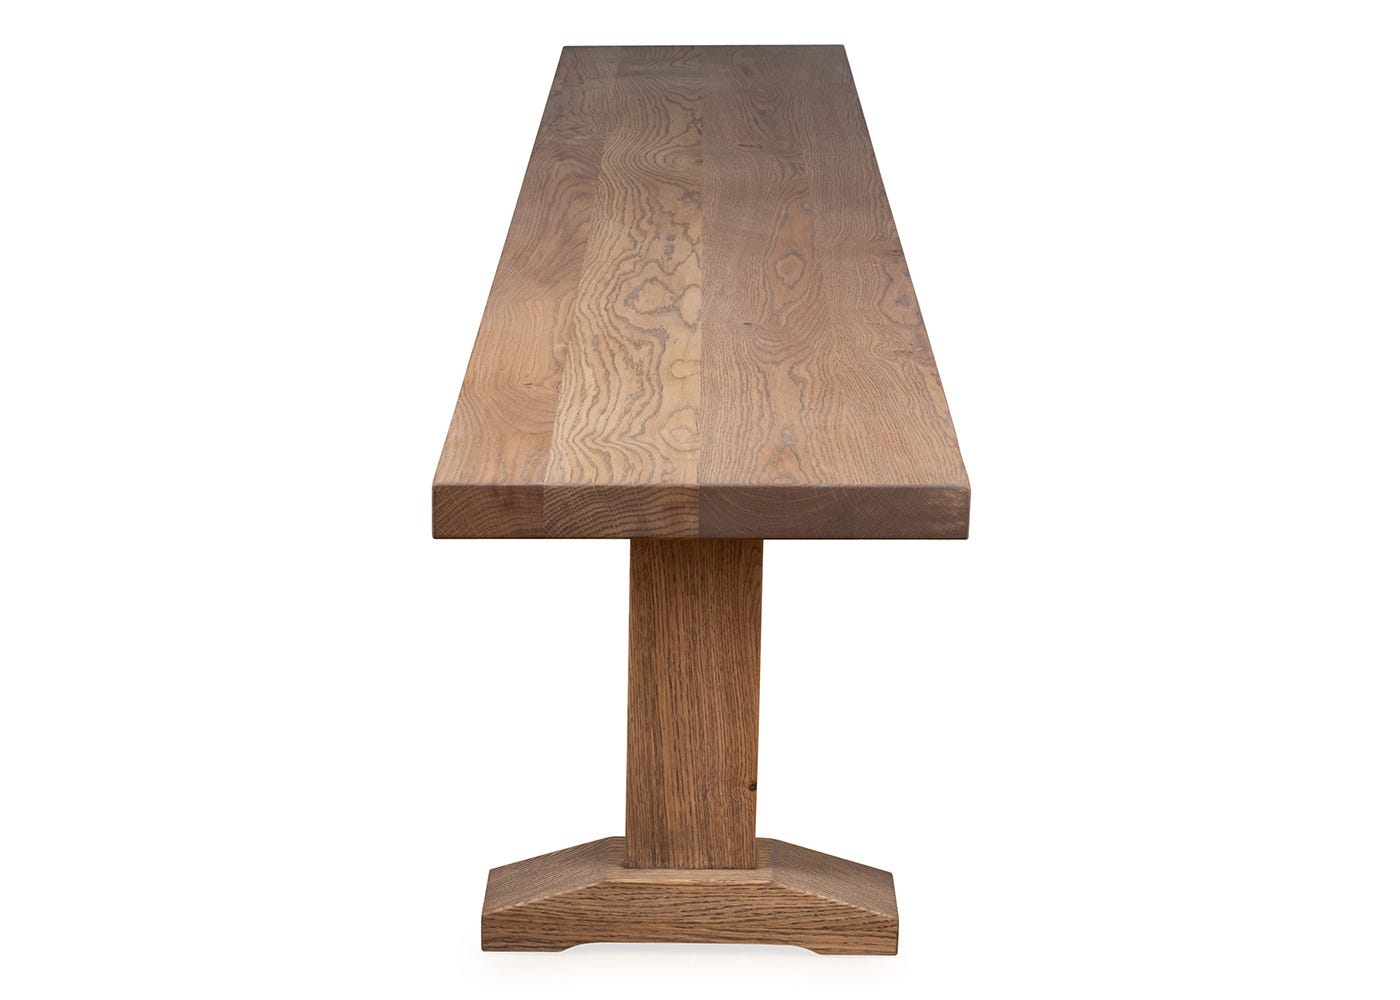 As shown solid oak top, also available with a walnut top